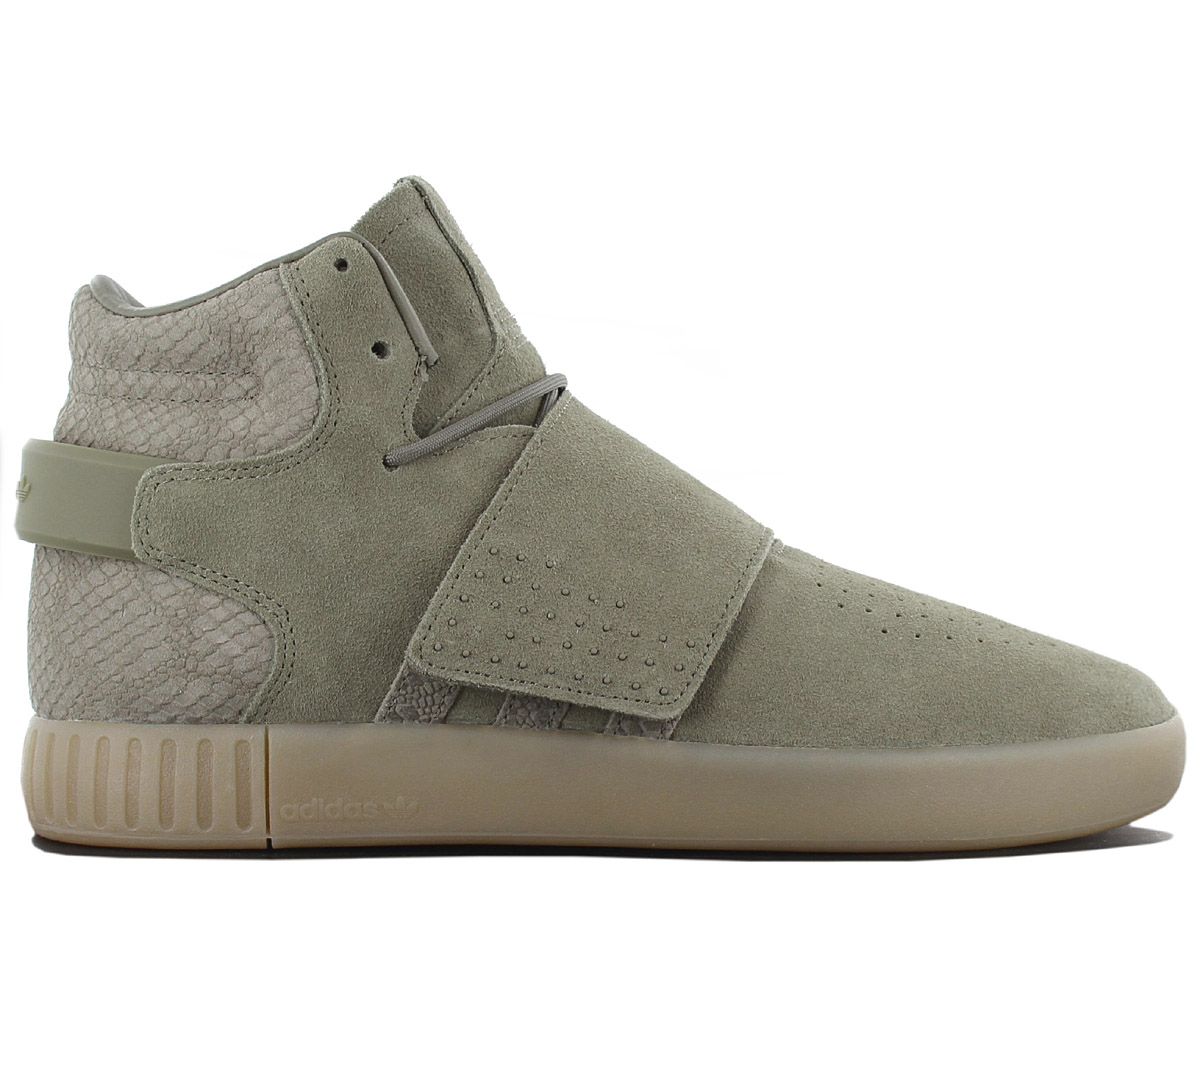 Details about Adidas Originals Tubular Invader Strap Men's Sneaker Leather Shoes BB8391 New